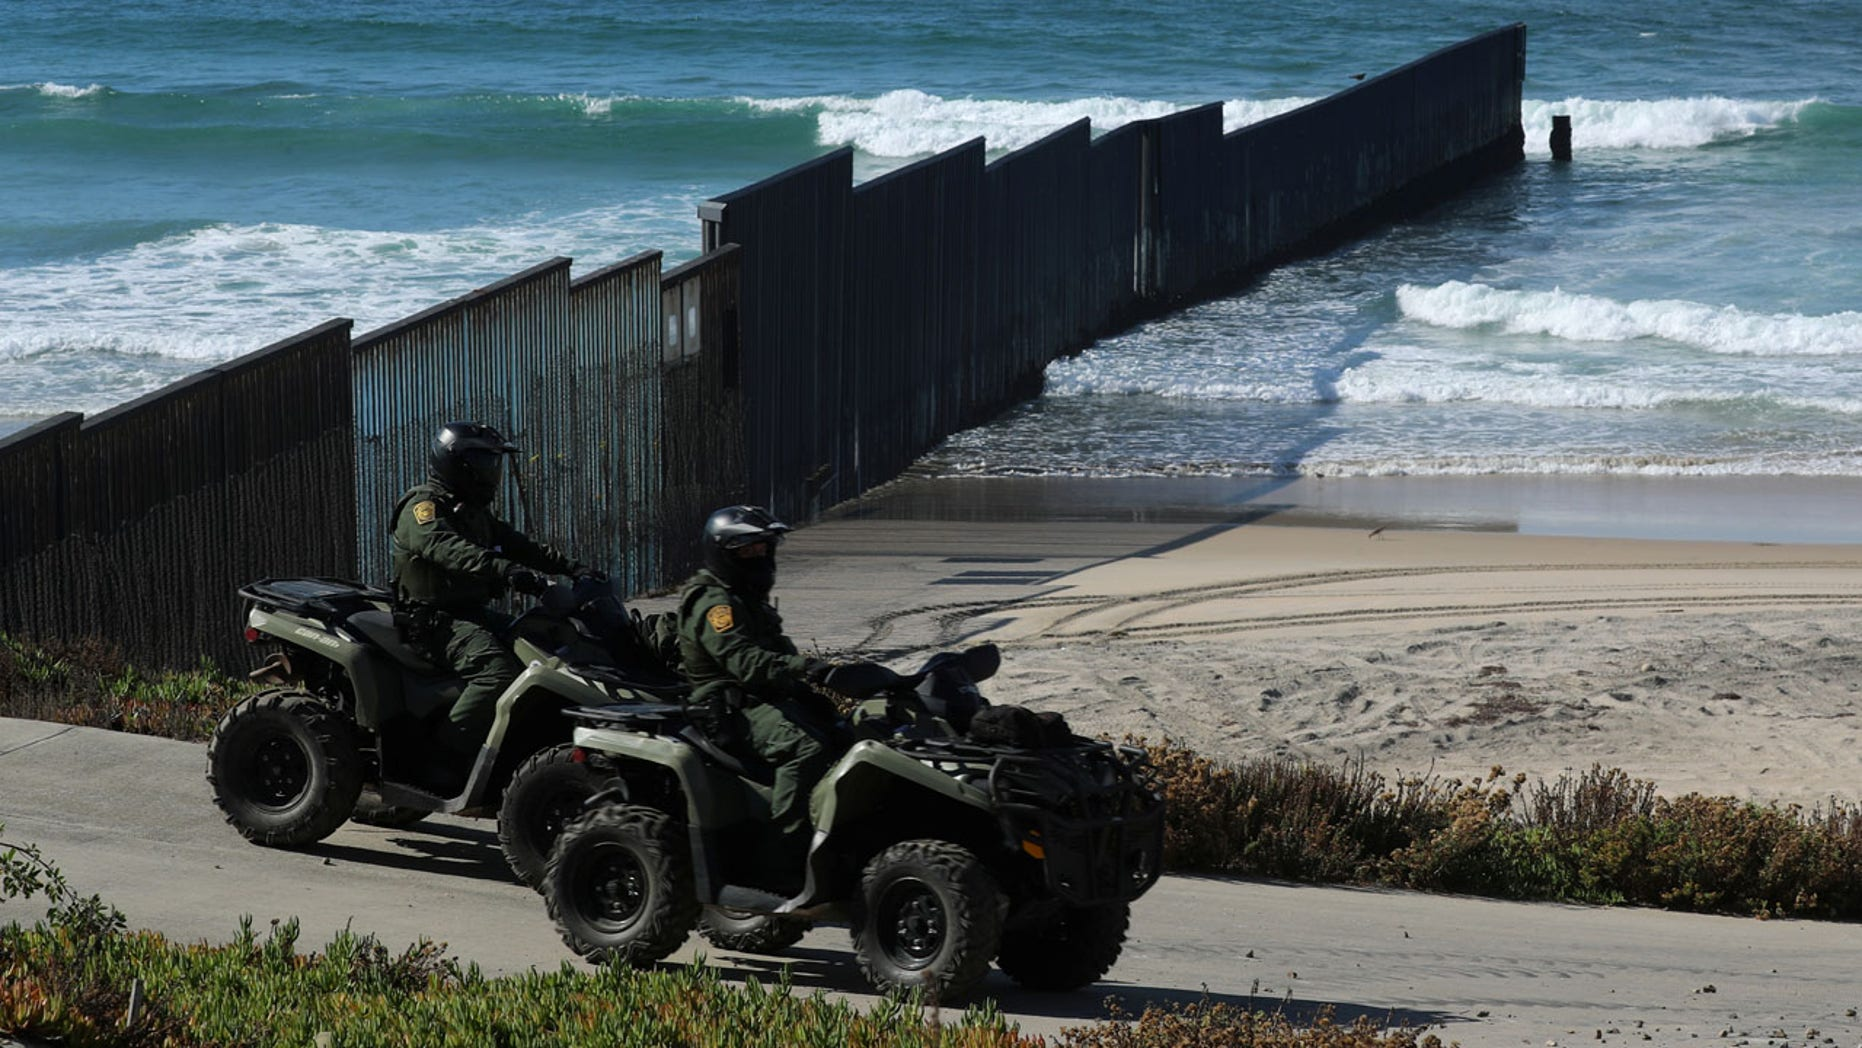 U.S. Customs and Border patrol agents on all-terrain vehicles look over over the Mexico- U.S. border wall where it enters the Pacific Ocean at Border Field State Park in San Diego